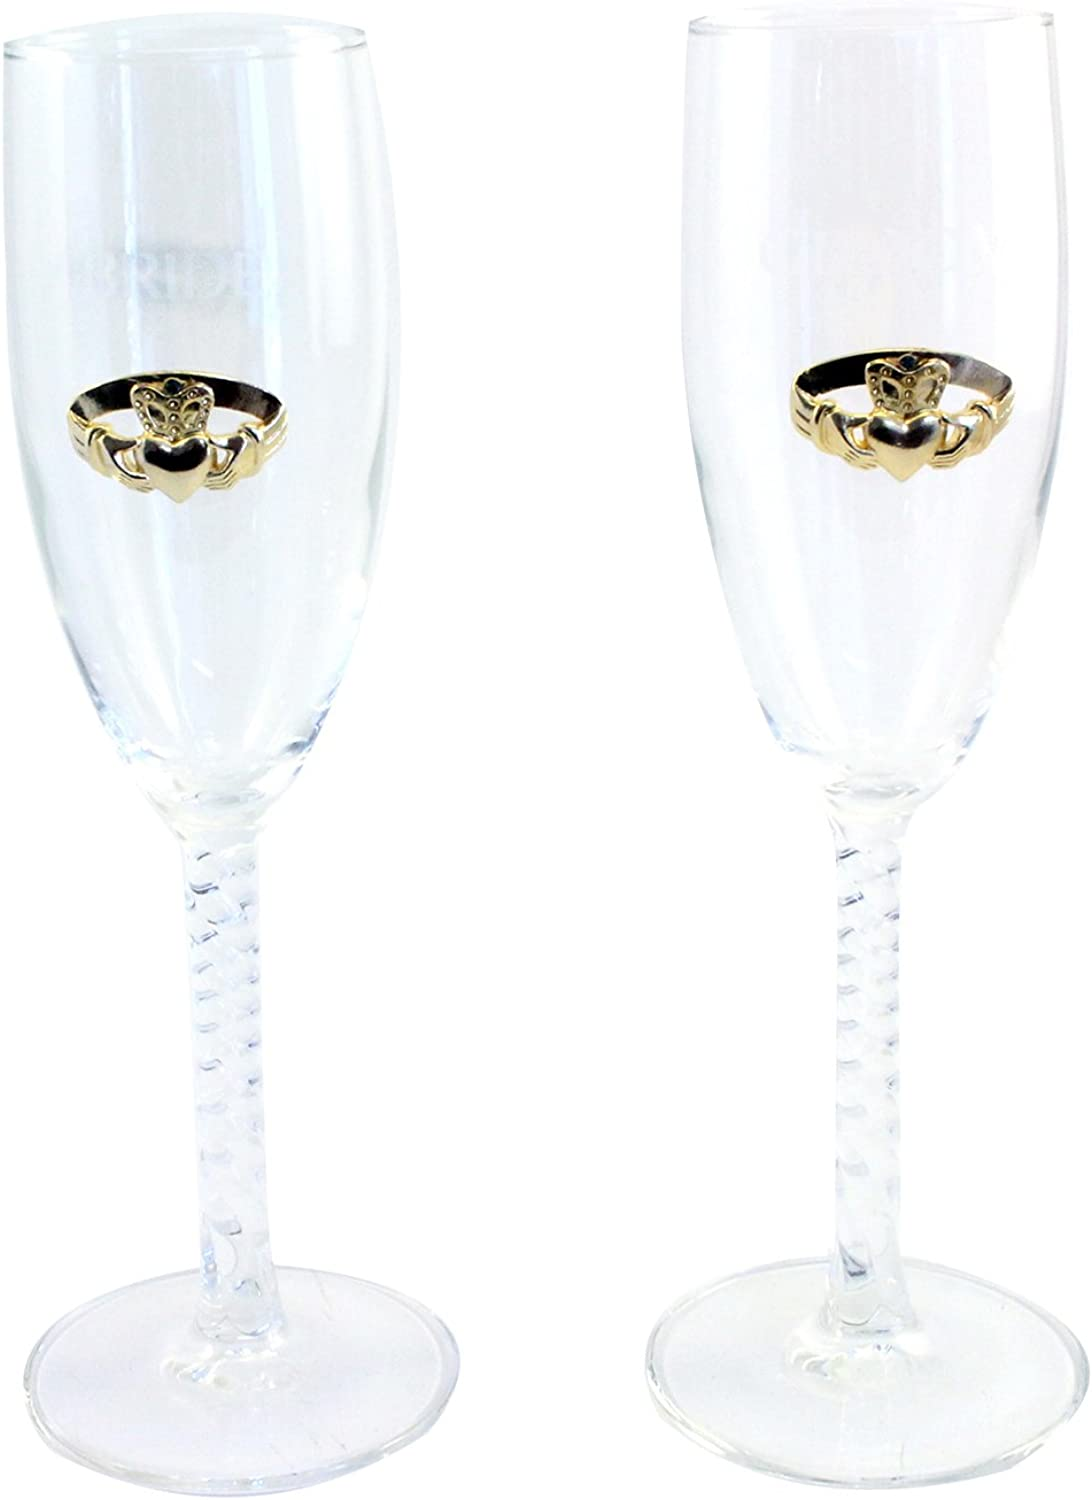 Bride and Groom Claddagh Champagne Glas Flute